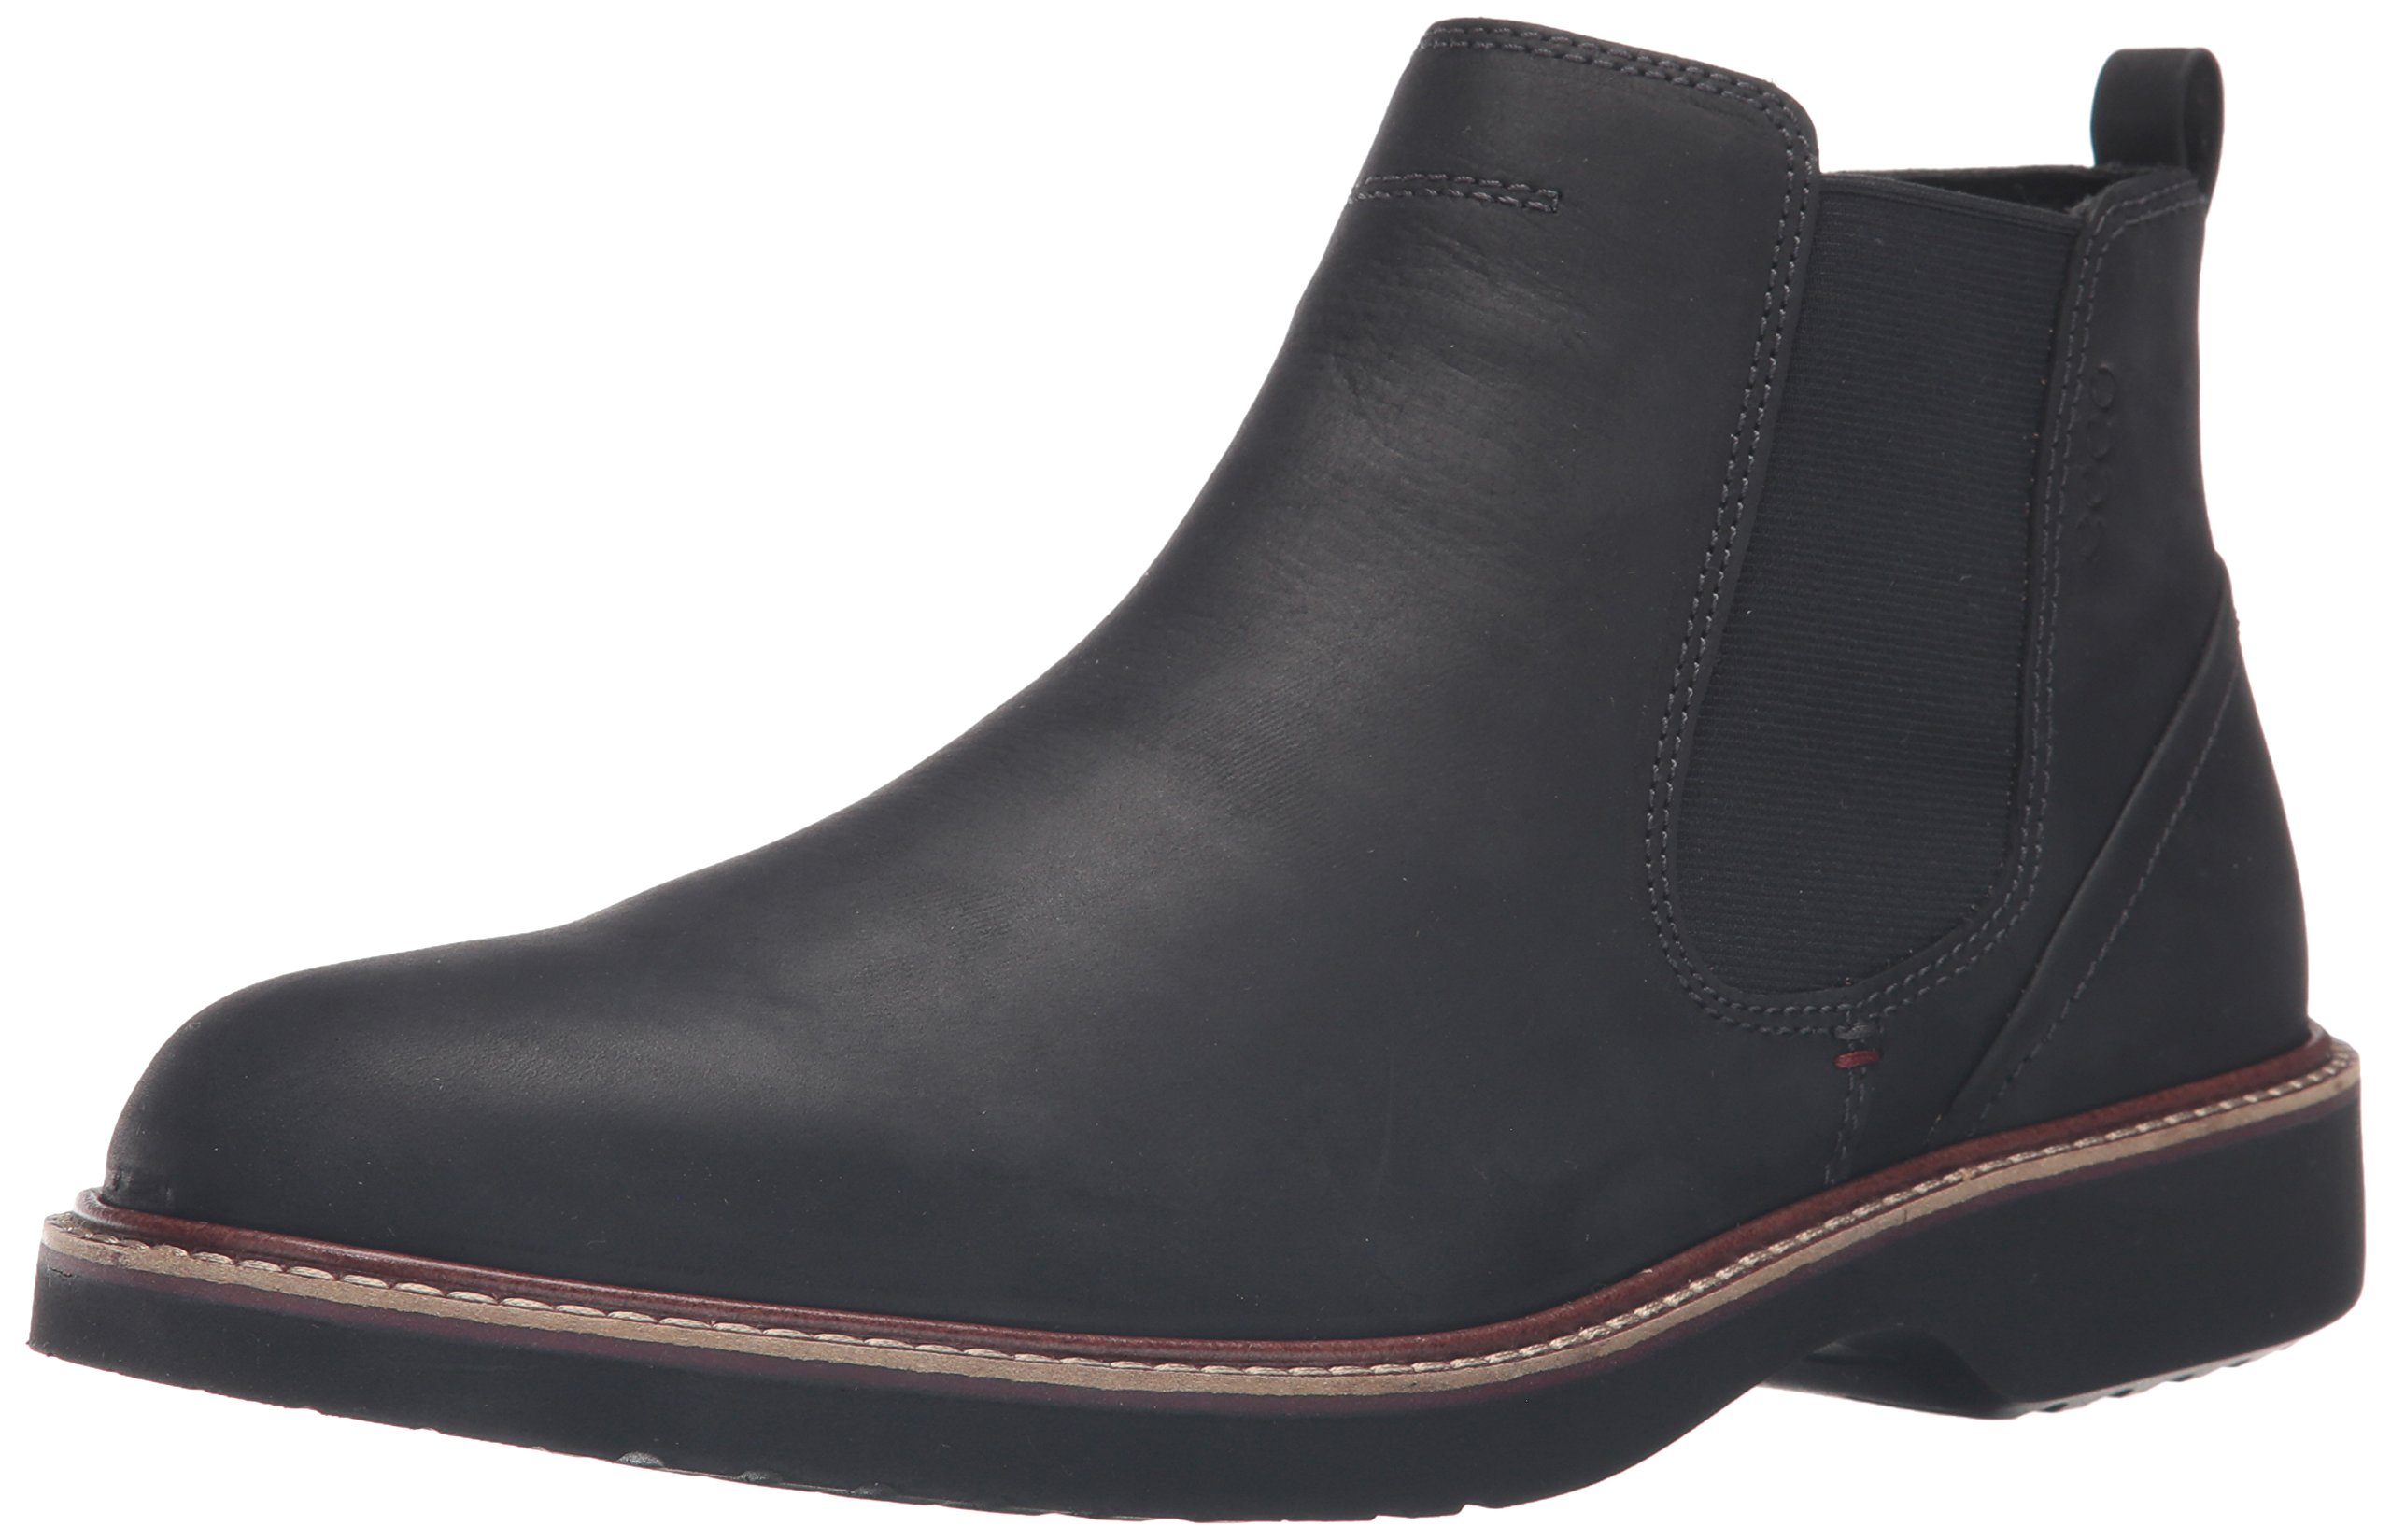 ECCO Men's Ian Chukka Boot, Black, 43 EU/9-9.5 M US